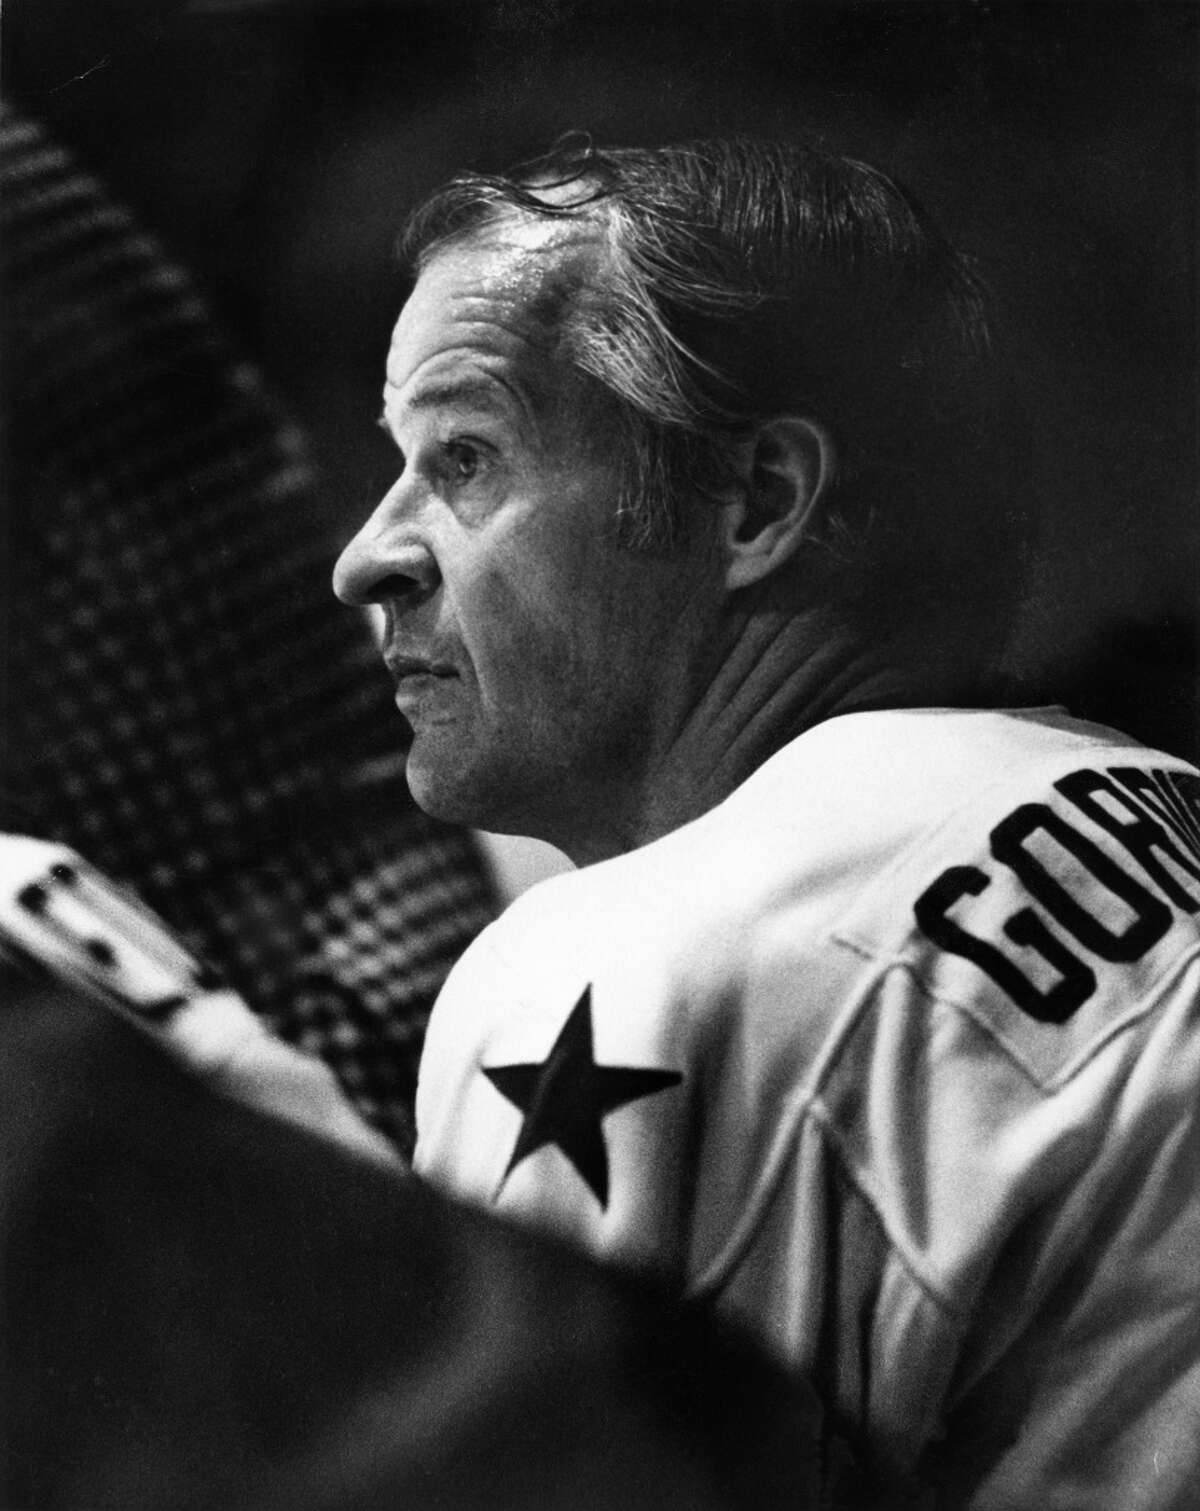 05/01/1975 - Houston Aeros Gordie Howe takes a breather on the bench in playoff game against the San Diego Mariners in the Sam Houston Coliseum.